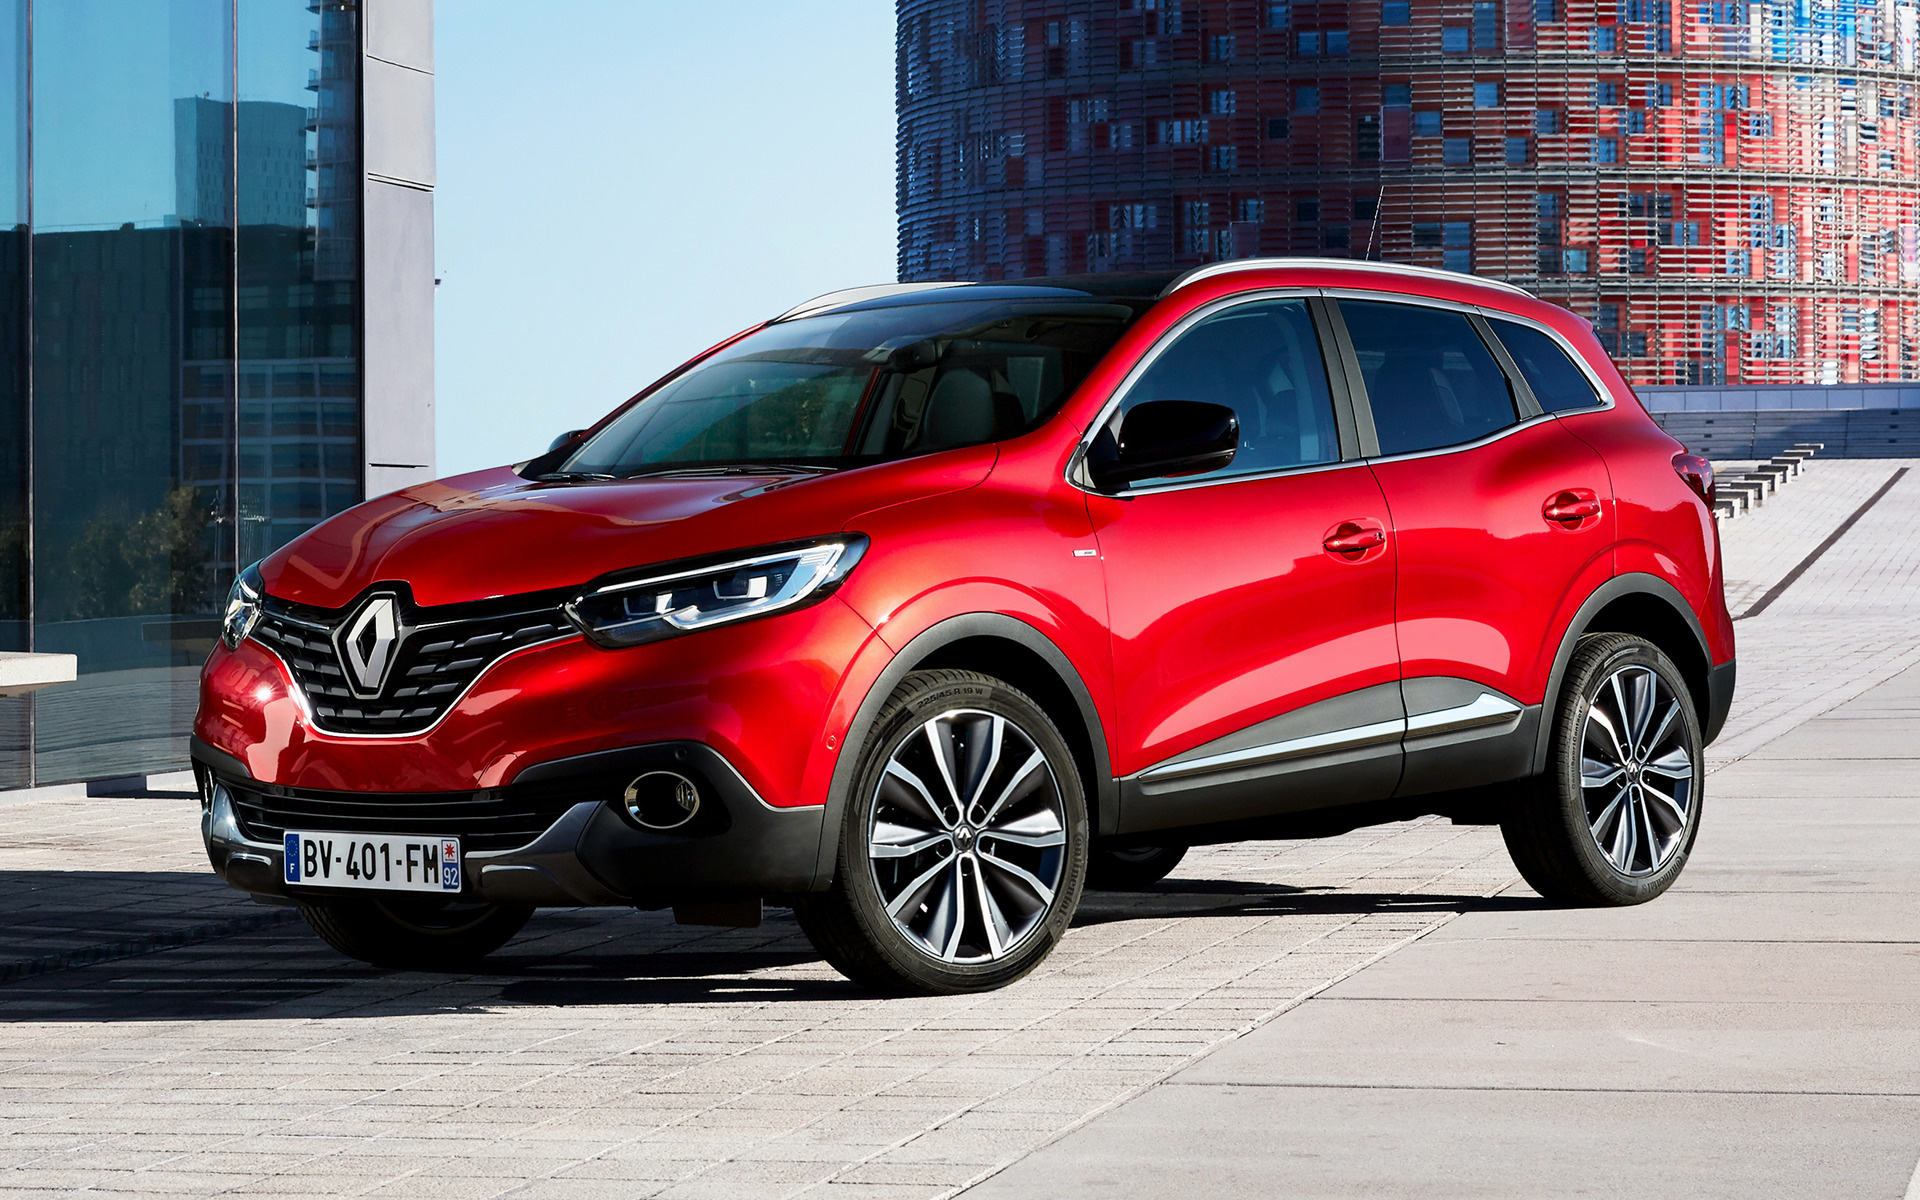 Dodge Ram 2015 >> Renault Kadjar Bose (2015) Wallpapers and HD Images - Car Pixel